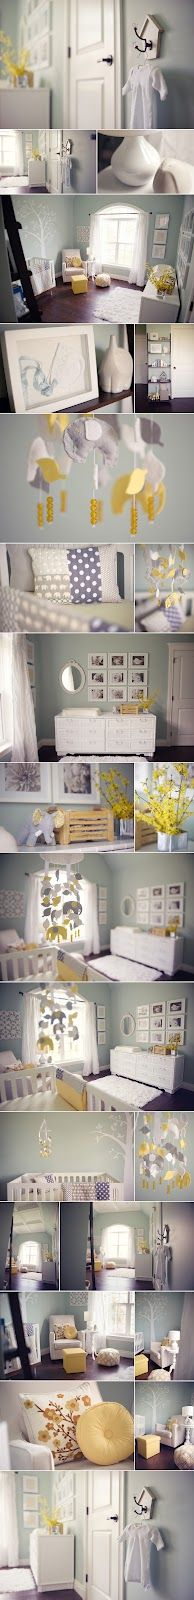 Gray and yellow baby's room. This nursery almost makes me want a baby